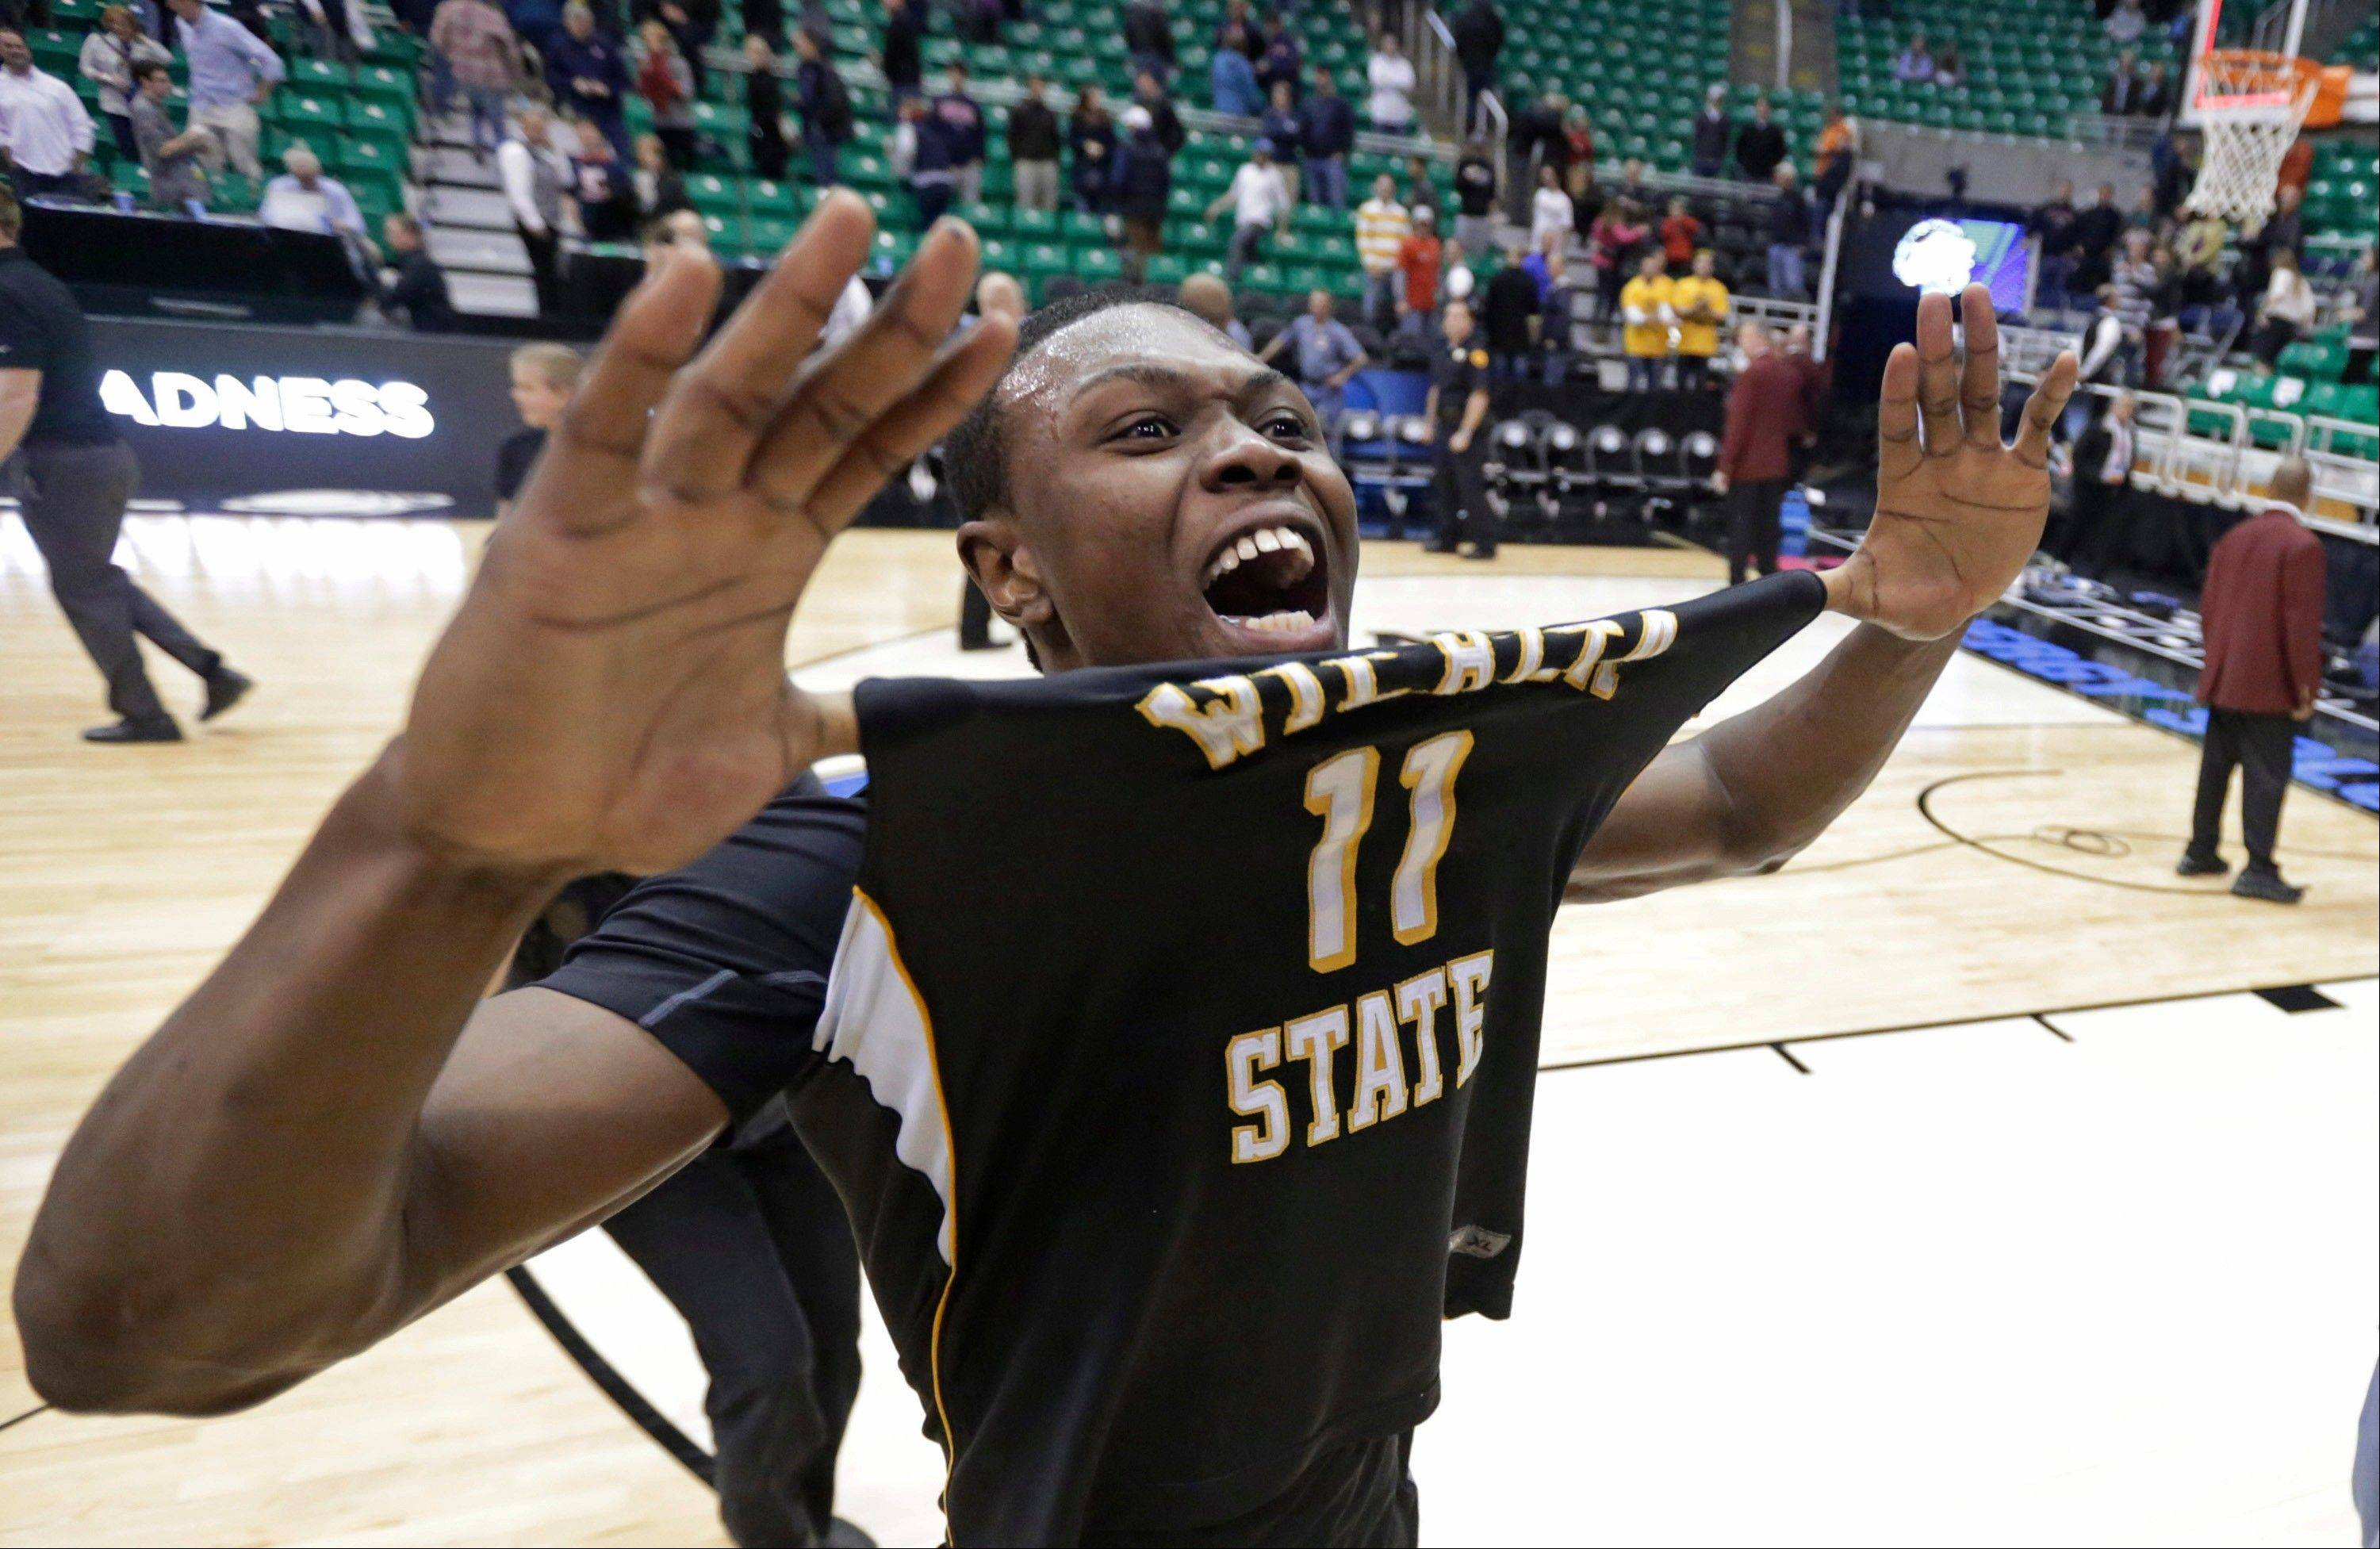 Wichita State's Cleanthony Early (11) celebrates his team defeating Gonzaga 76-70 during a third-round game in the NCAA men's college basketball tournament Saturday night in Salt Lake City.